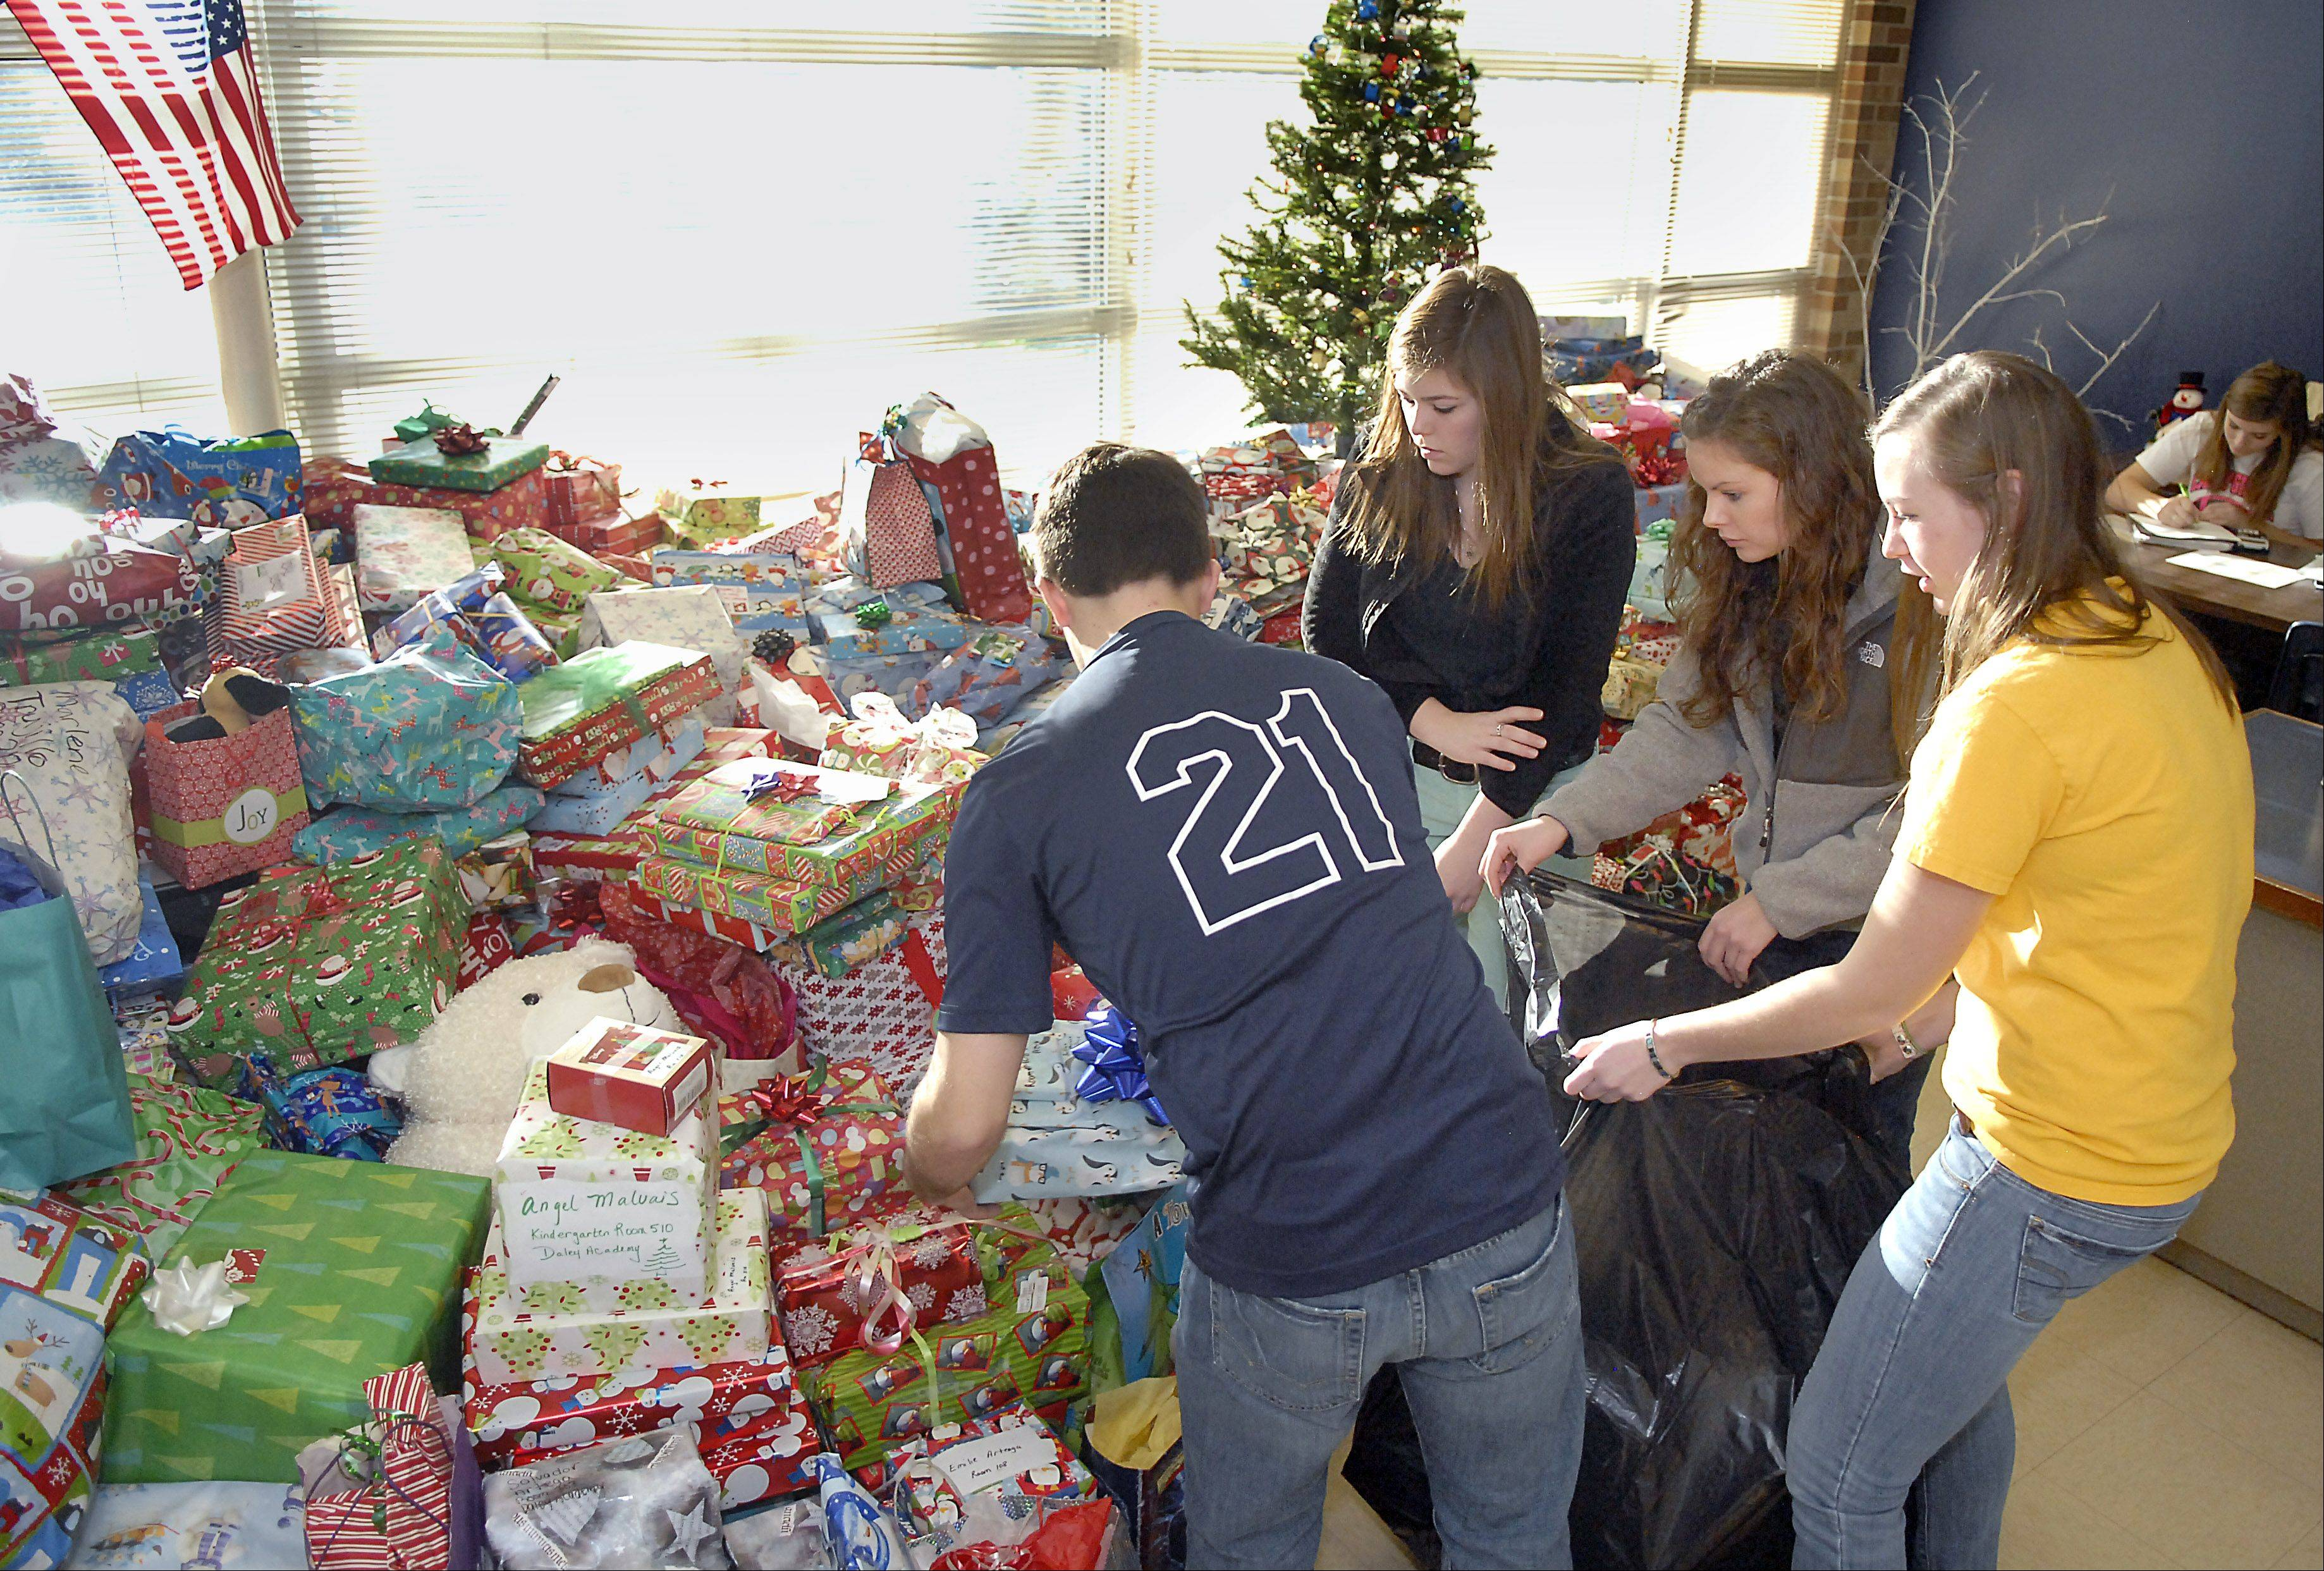 Cary-Grove High School students and Interact Club members Patrick Kelly, 18, Peyton Taylor, 16, Rita O'Connell, 18, and Christine Sweinberg, 17, bag presents Thursday to be loaded on a Chicago Public Schools truck bound for the Richard J. Daley Academy in the Back of the Yards neighborhood.